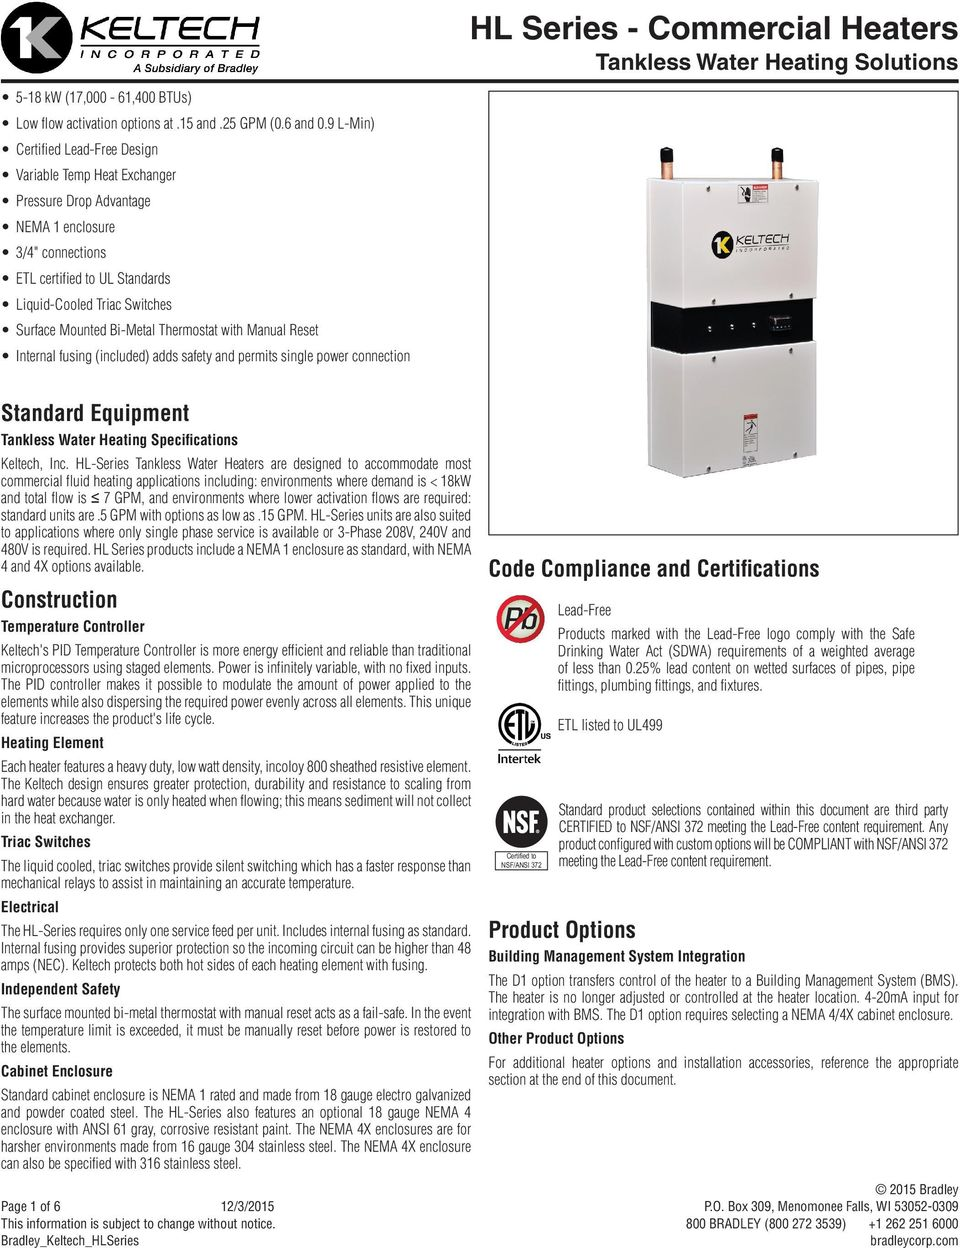 Bi-Metal Thermostat with Manual Reset Internal fusing (included) adds safety and permits single power connection Standard Equipment Tankless Water Heating Specifications Keltech, Inc.